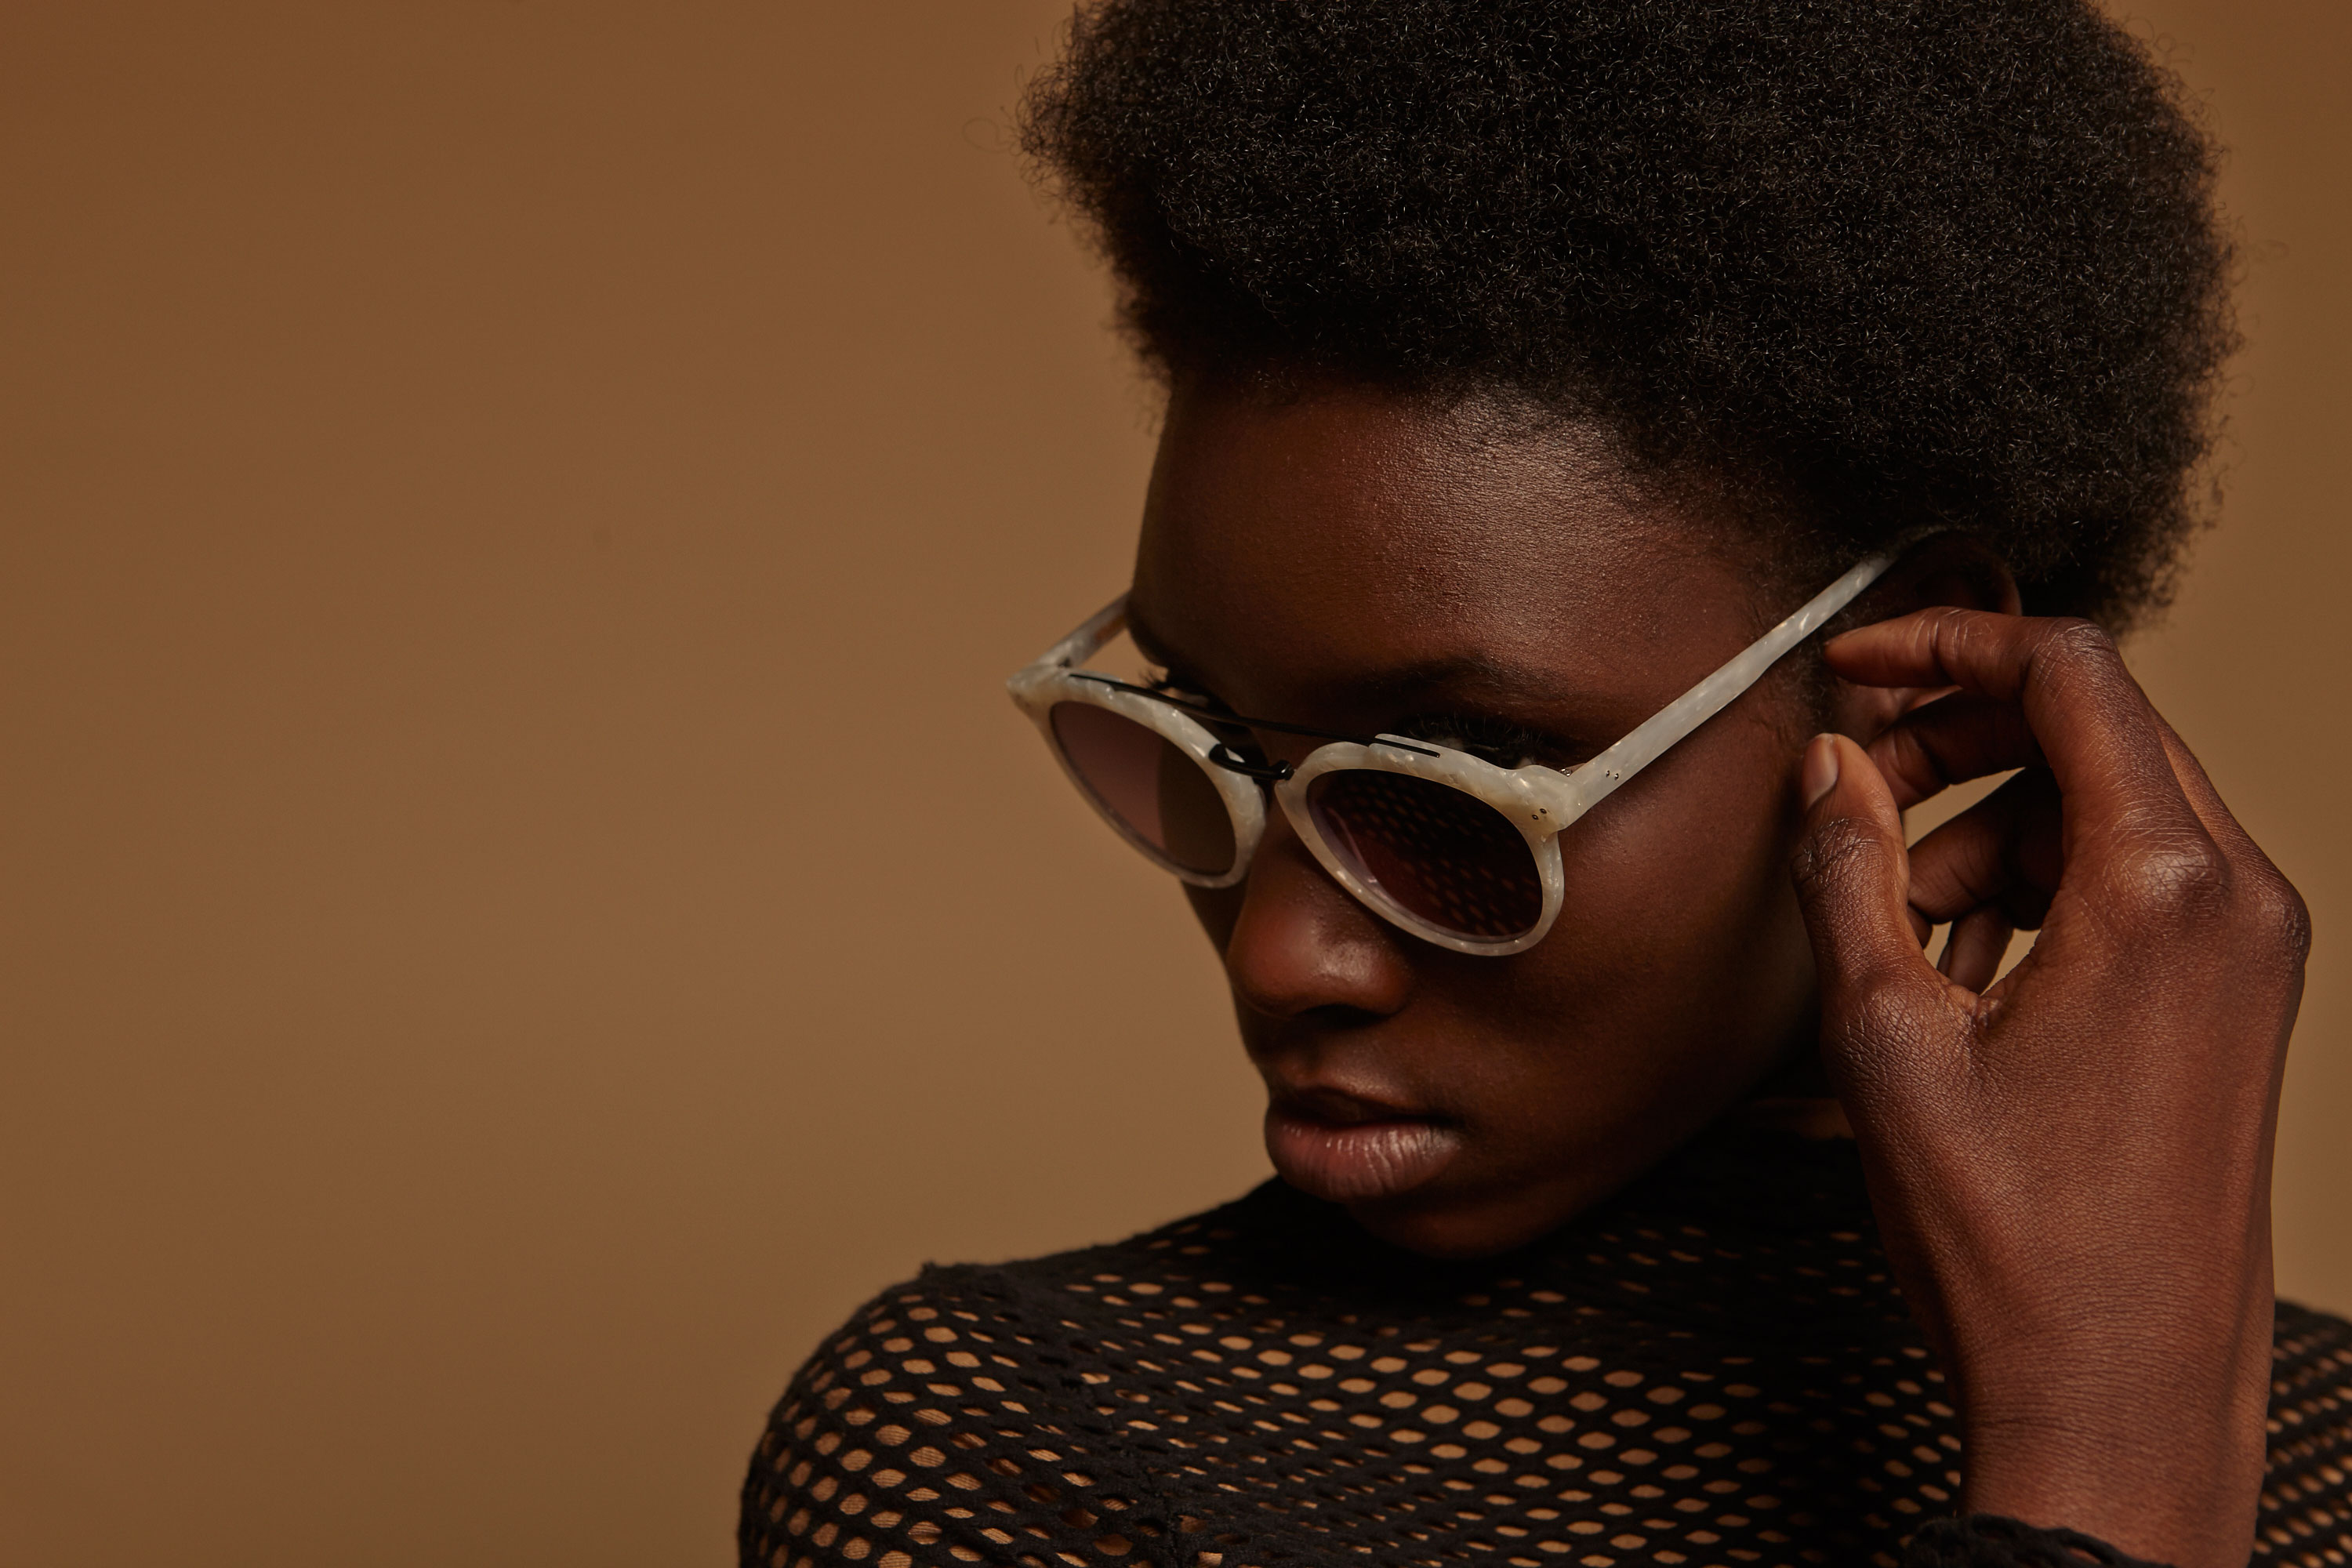 Voyage stainless steel rounded gun sunglasses by GIGI Studios